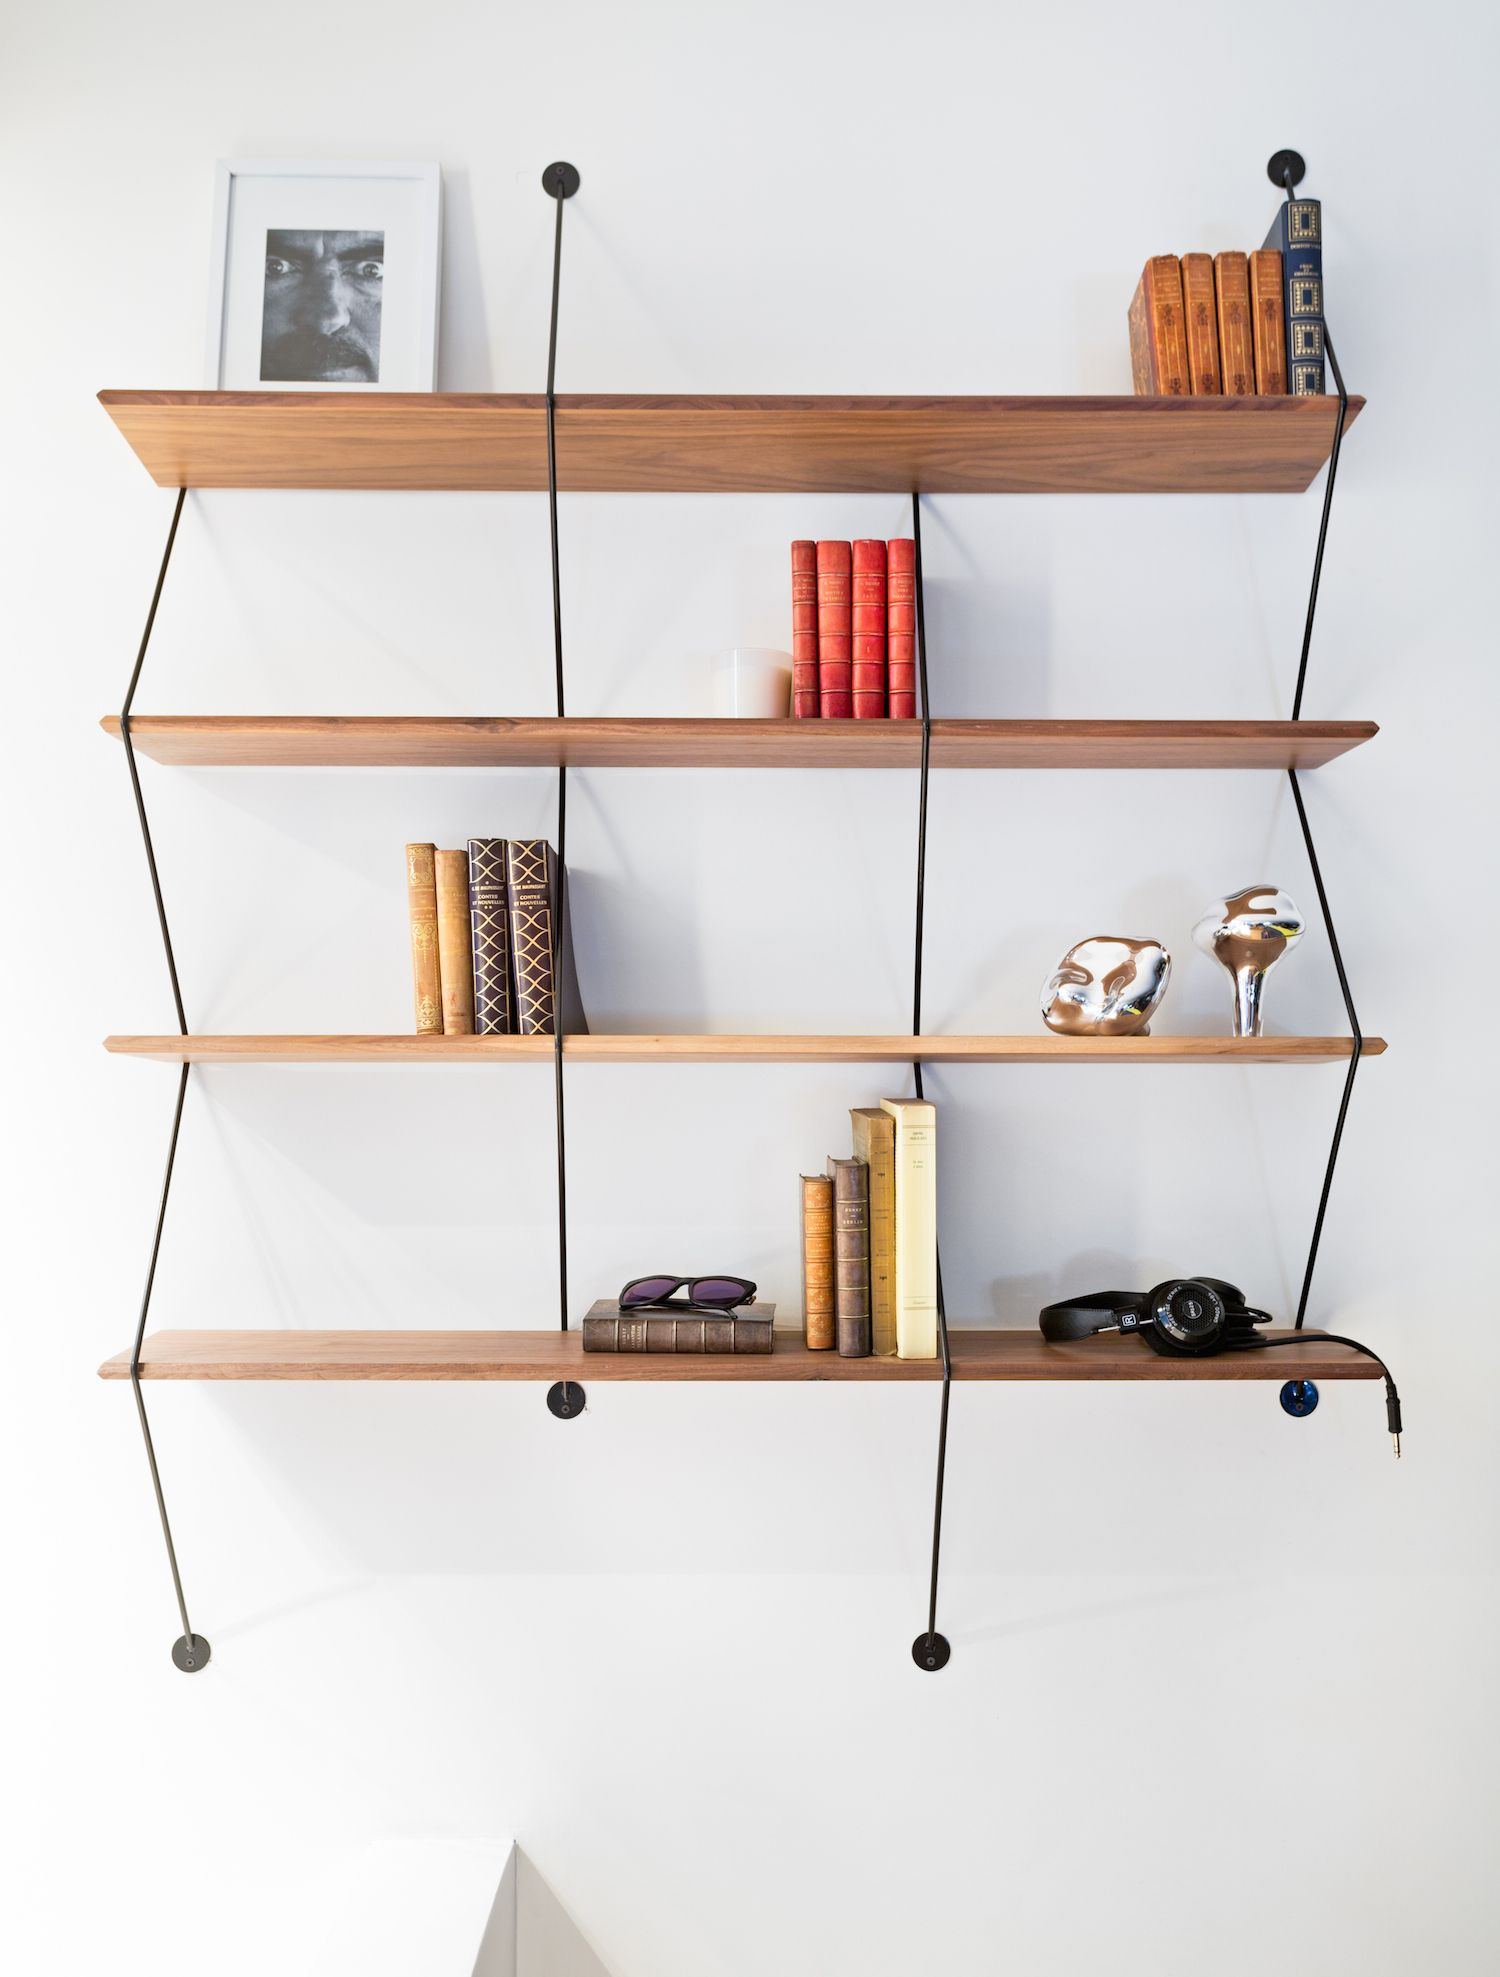 La Chance office & Showroom - the Climb shelf holding precious books - photo Felix Forest - www.lachance.fr